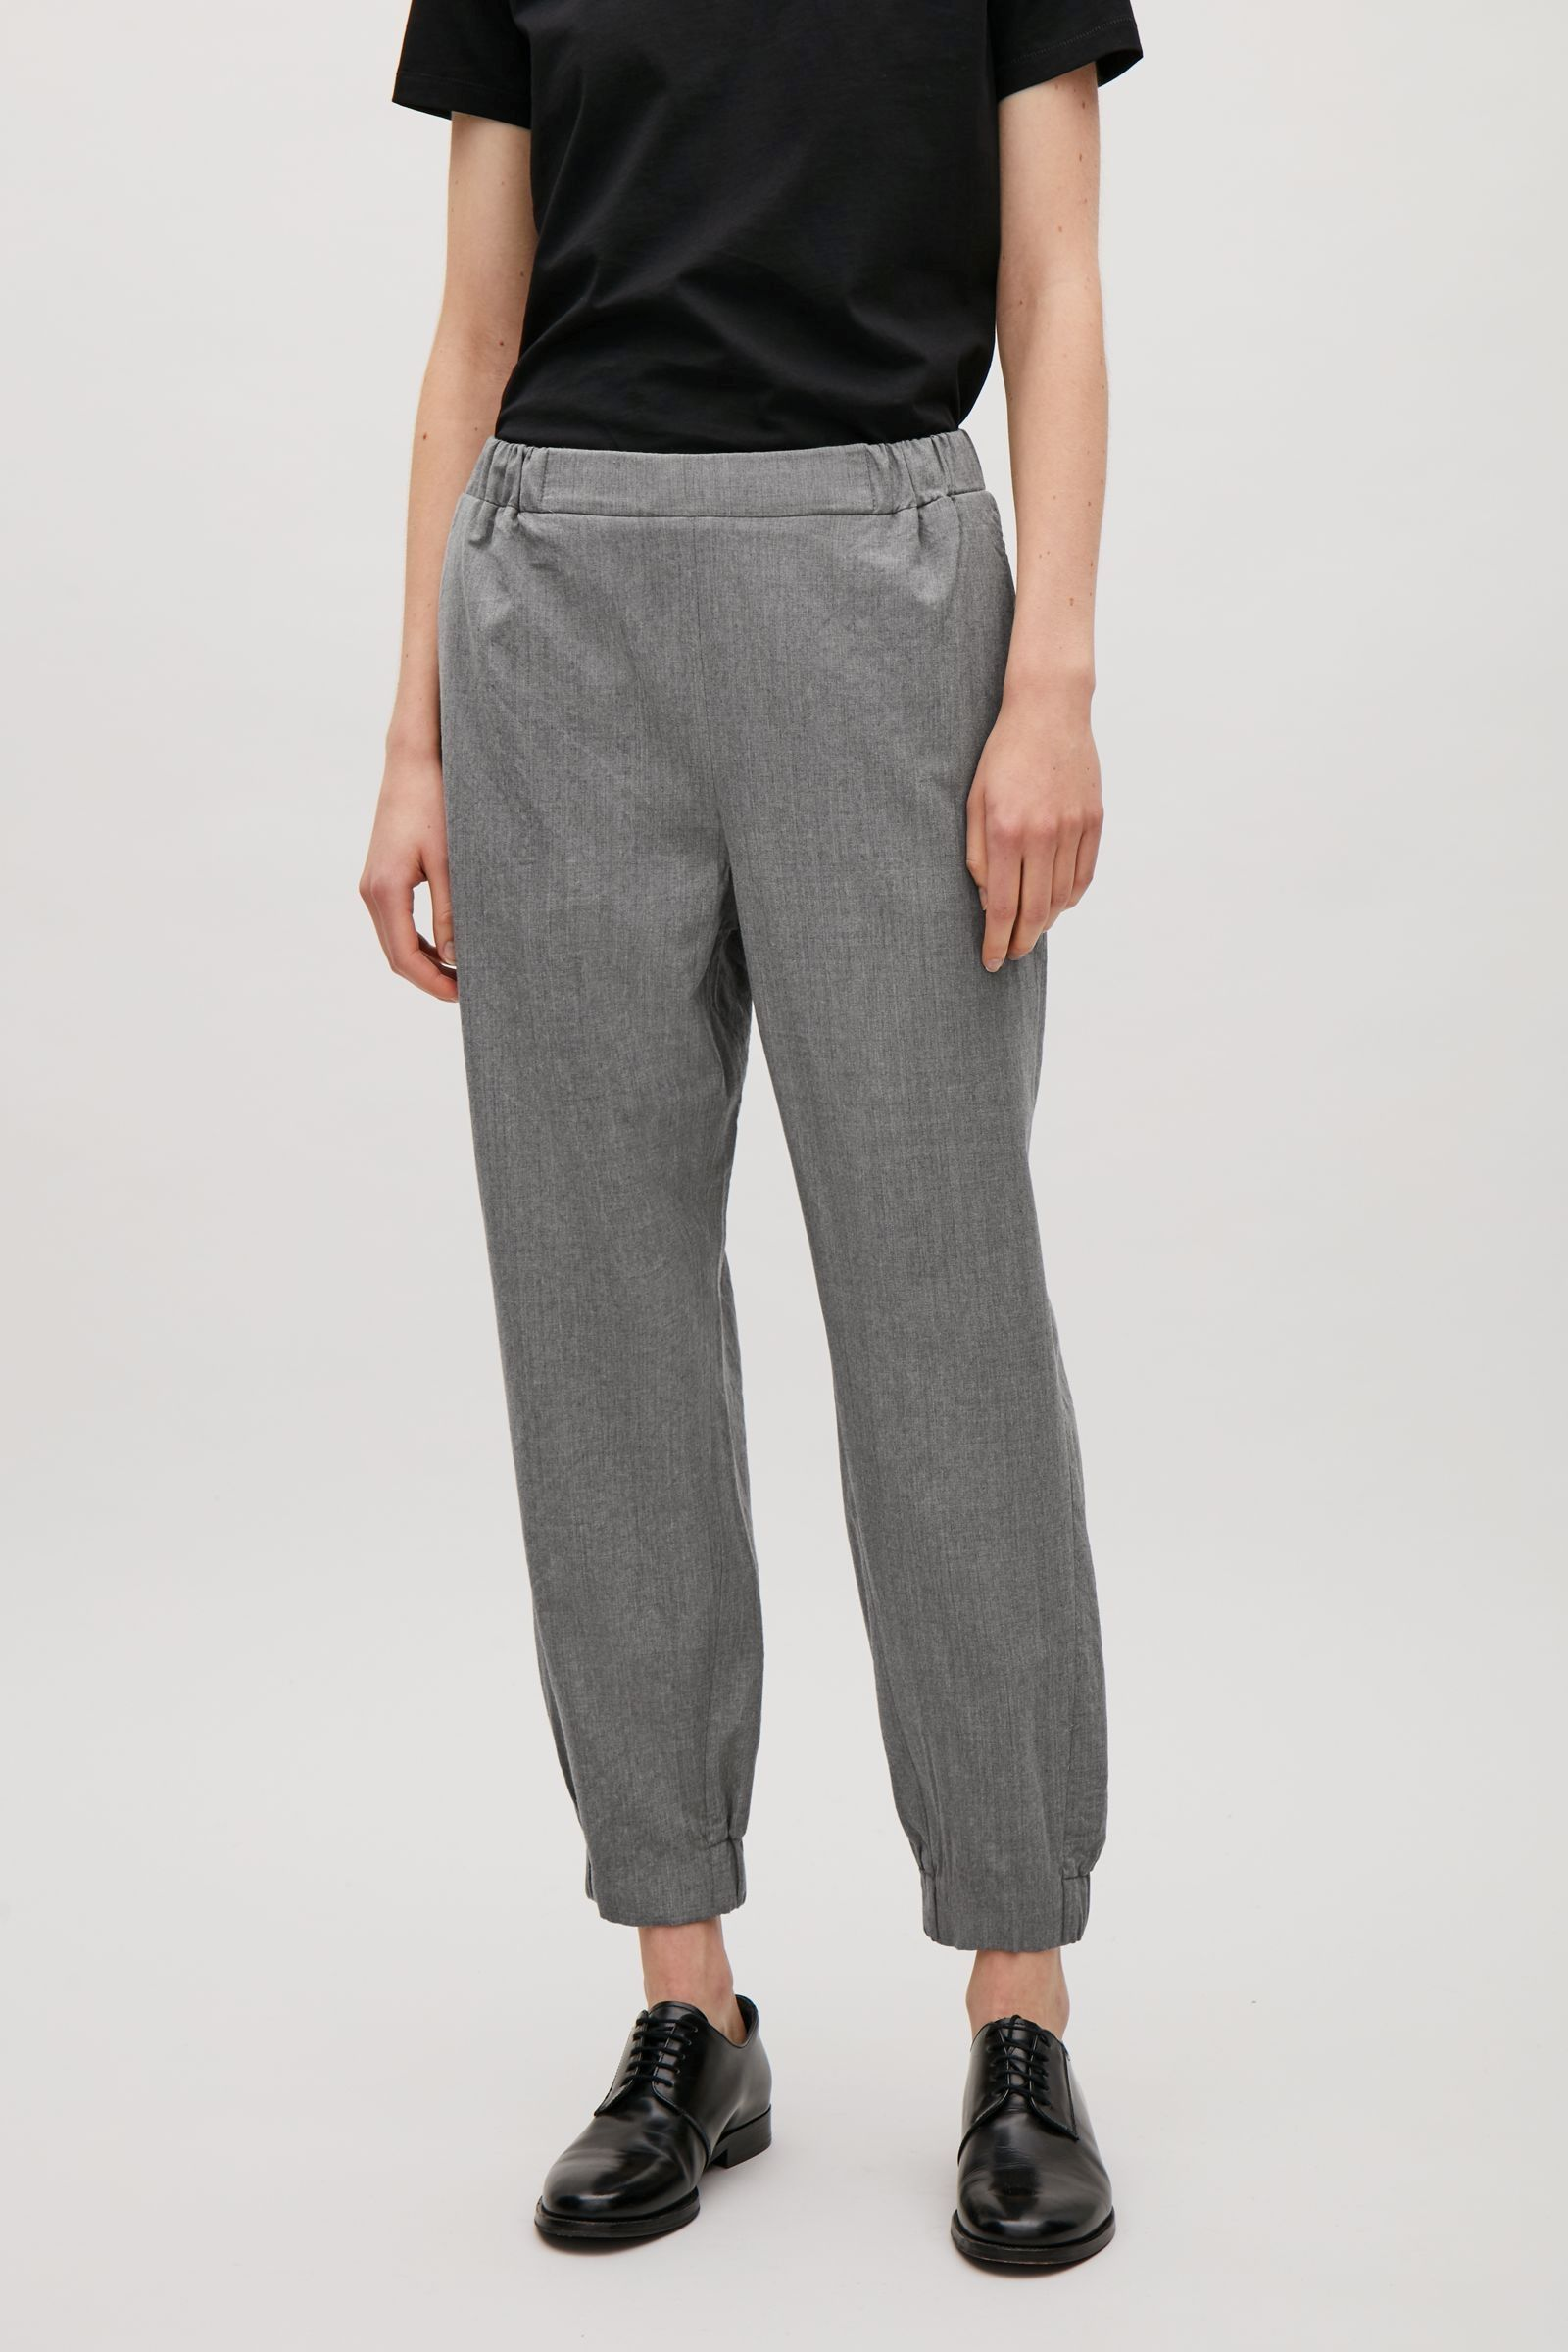 0d27467db8 COS image 7 of Elastic waist & cuff trousers in Grey | Широкие брюки ...